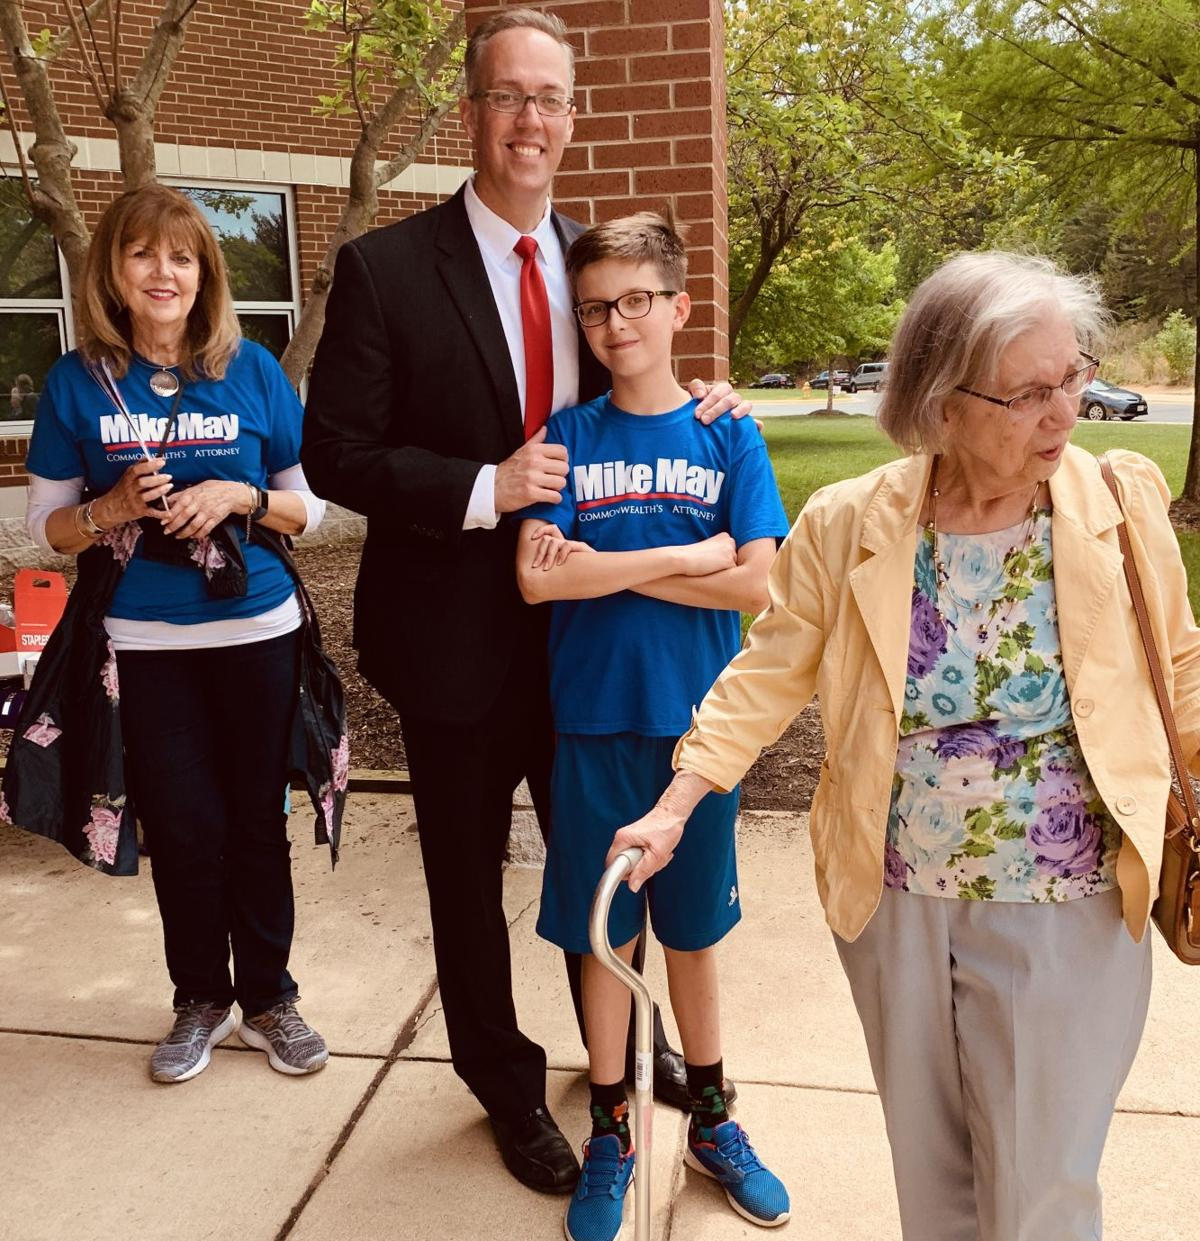 Mike May with Leo and mom outside polls May 4, 2019